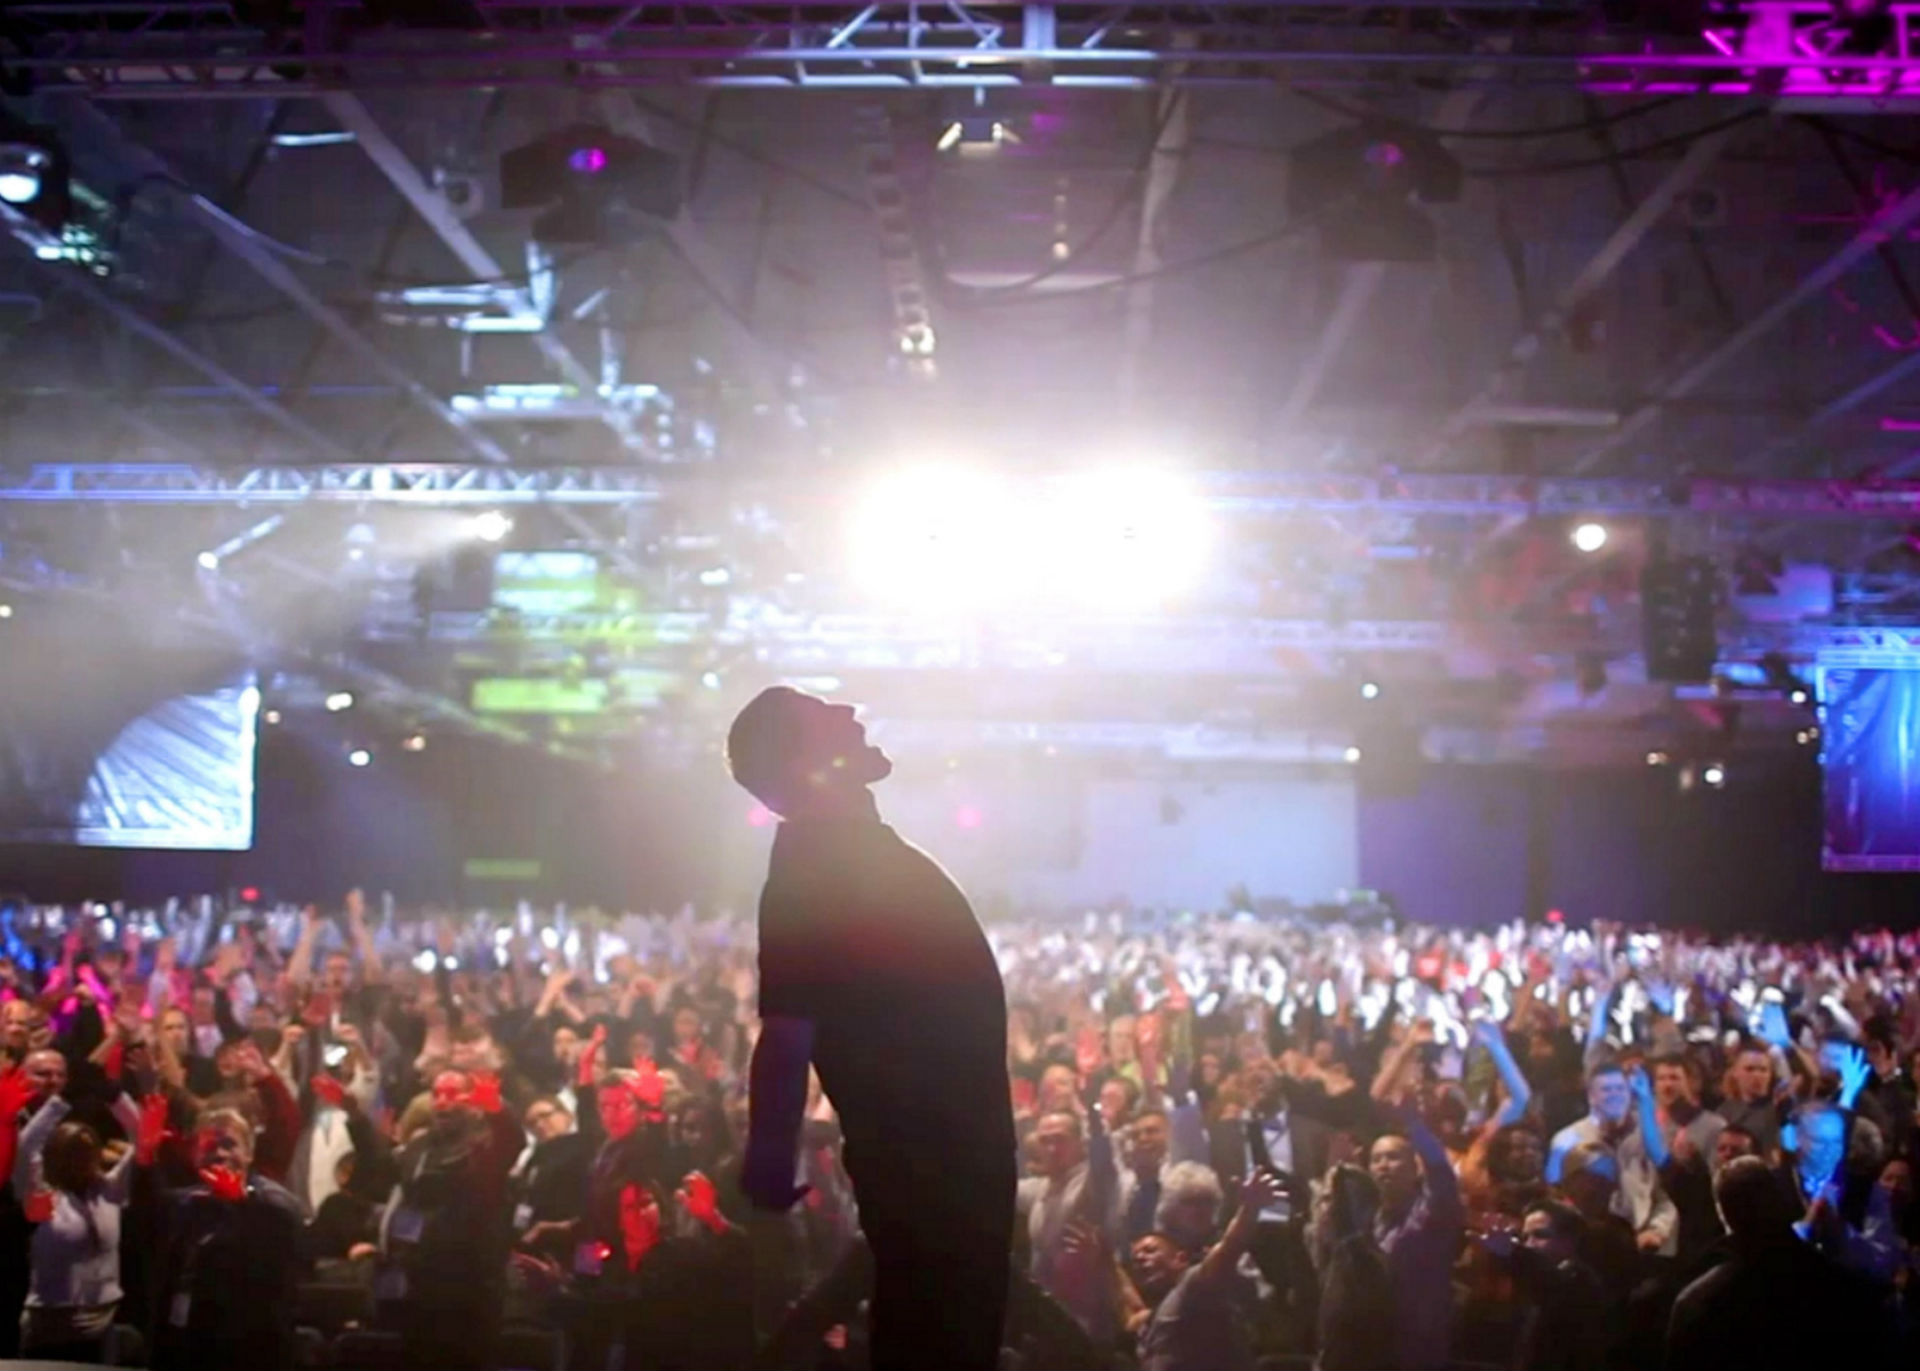 I Am Not Your Documentary: Netflix's Troubling Tony Robbins